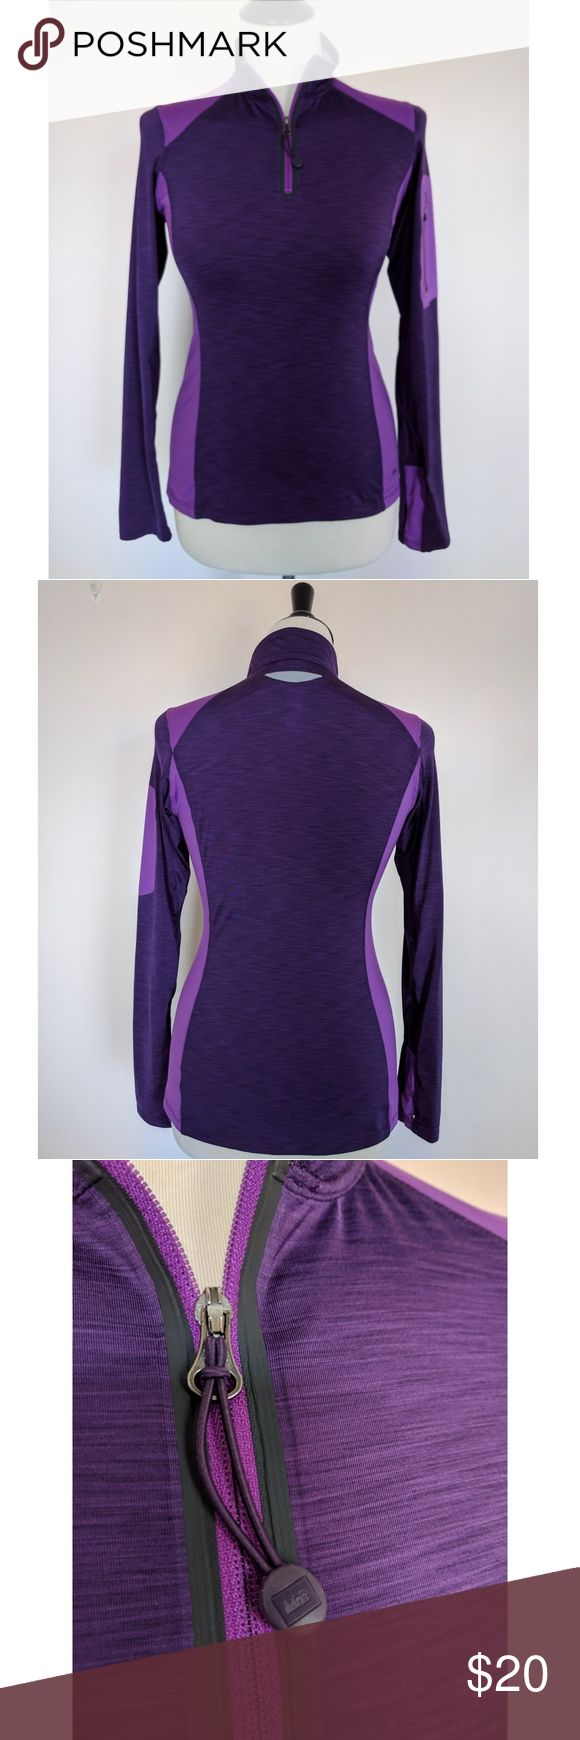 REI Quarter-Zip Tech Shirt REI Quarter-Zip Tech Shirt in Purple. Great condition! Some decal peeling on front bottom left as shown in pic 4. Thumb holes, left upper arm zipper pocket, vents on back and underarms. REI Tops